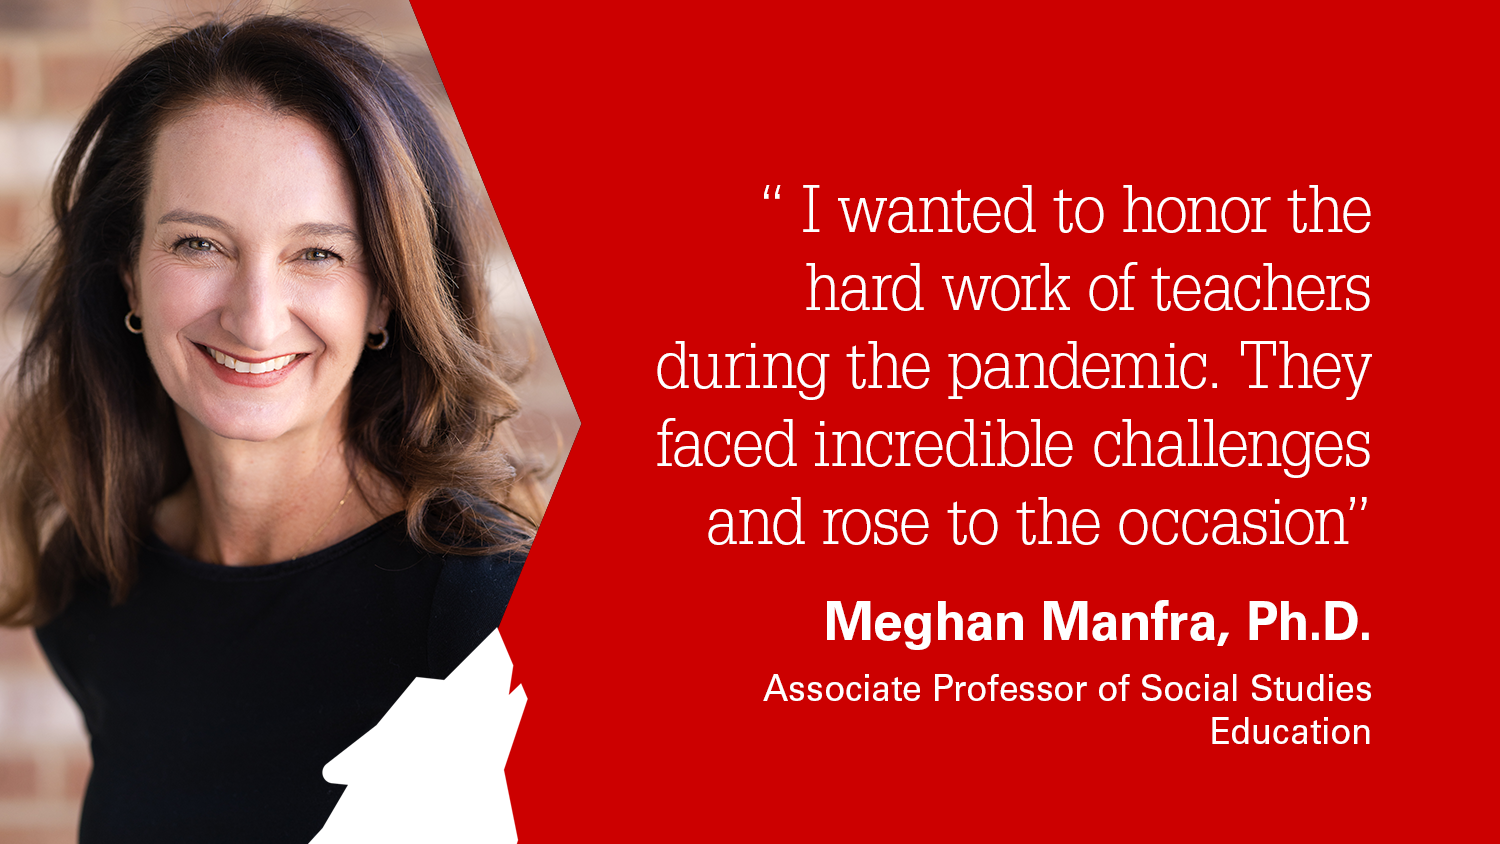 NC State College of Education Associate Professor Meghan Manfra, Ph.D.